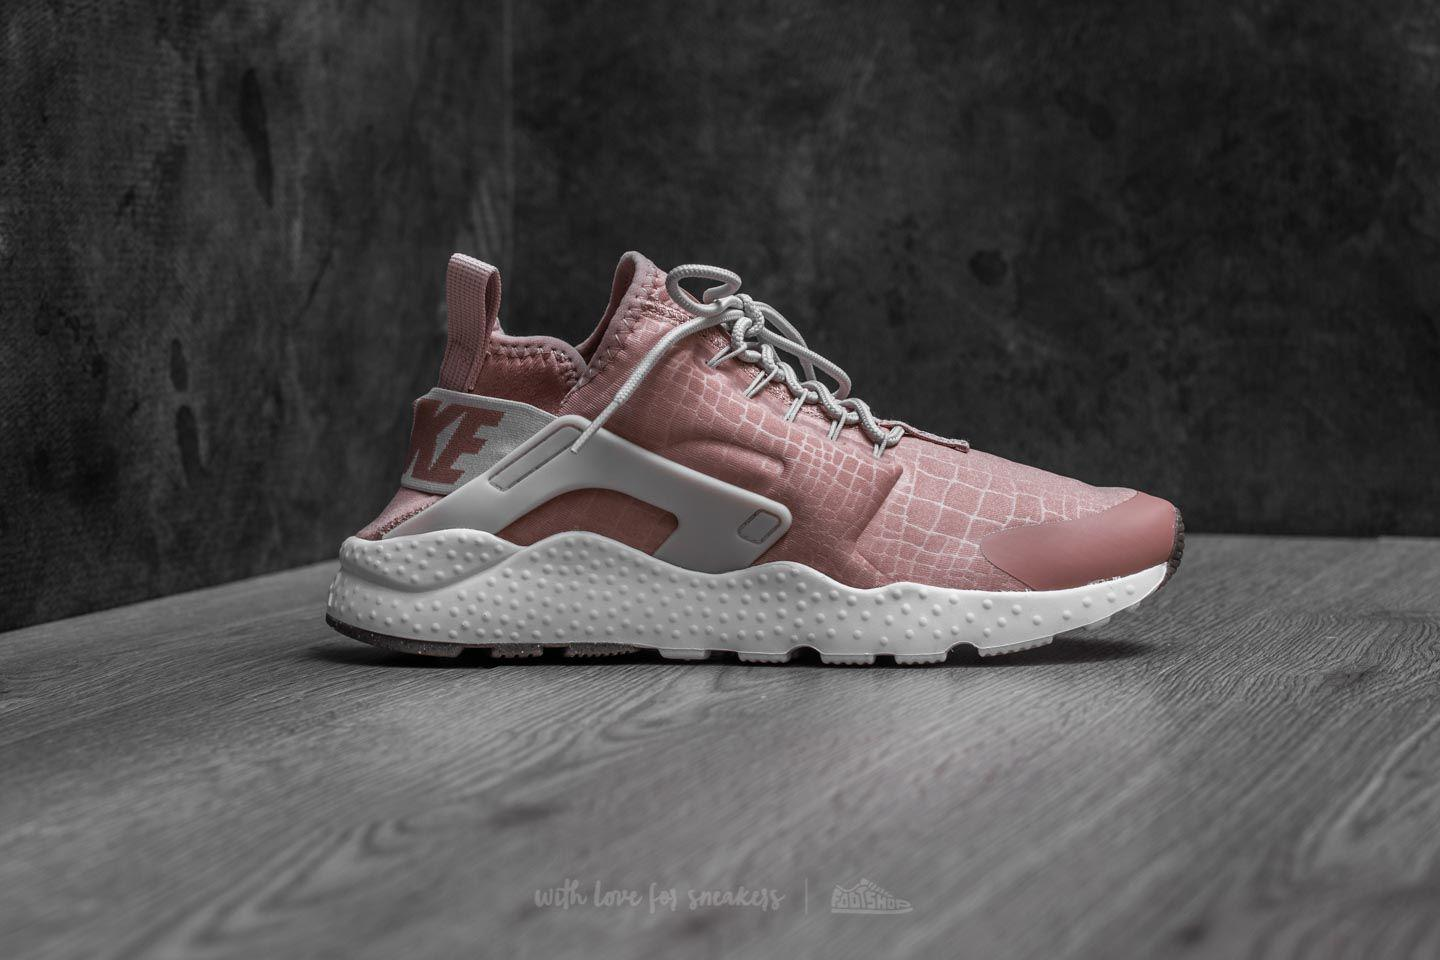 Lyst - Nike W Air Huarache Run Ultra Particle Pink  Light Bone aae054a8ef26